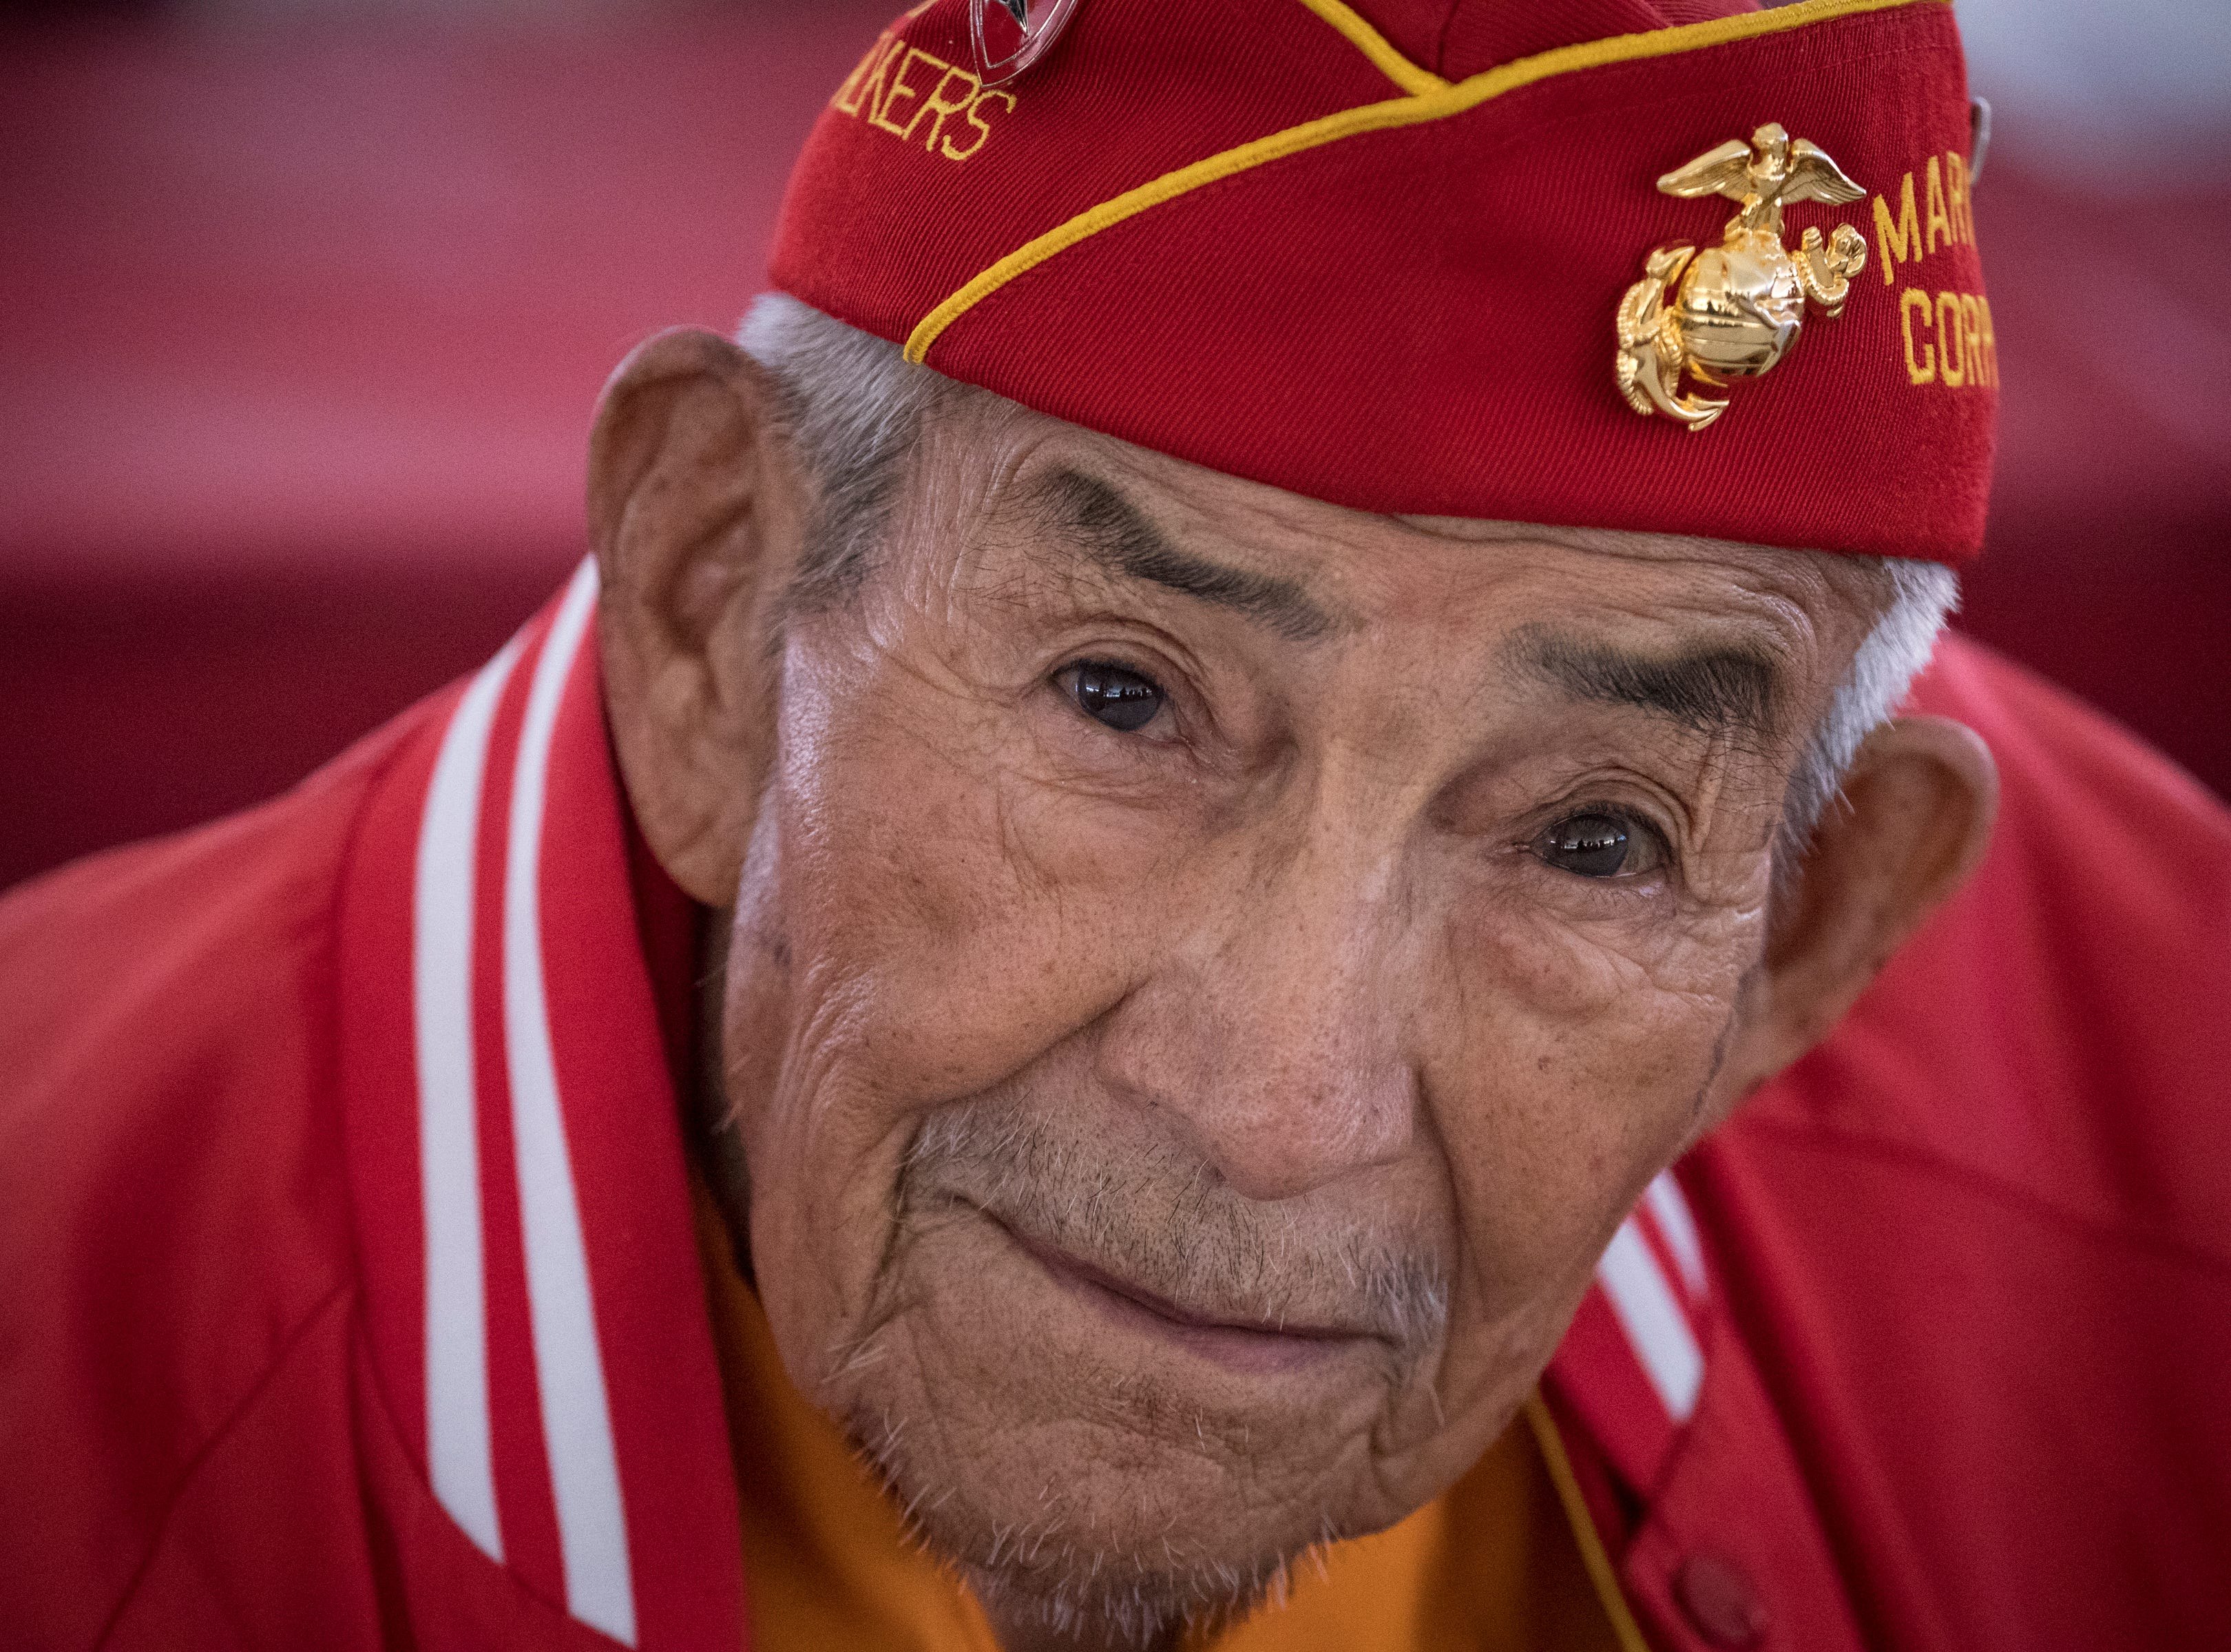 Navajo Code Talker Alfred Newman listens to the Marine Forces Reserve Band during the Navajo Nation Code Talkers Day ceremony Aug. 14, 2018, at the Veterans Memorial Park in Window Rock.